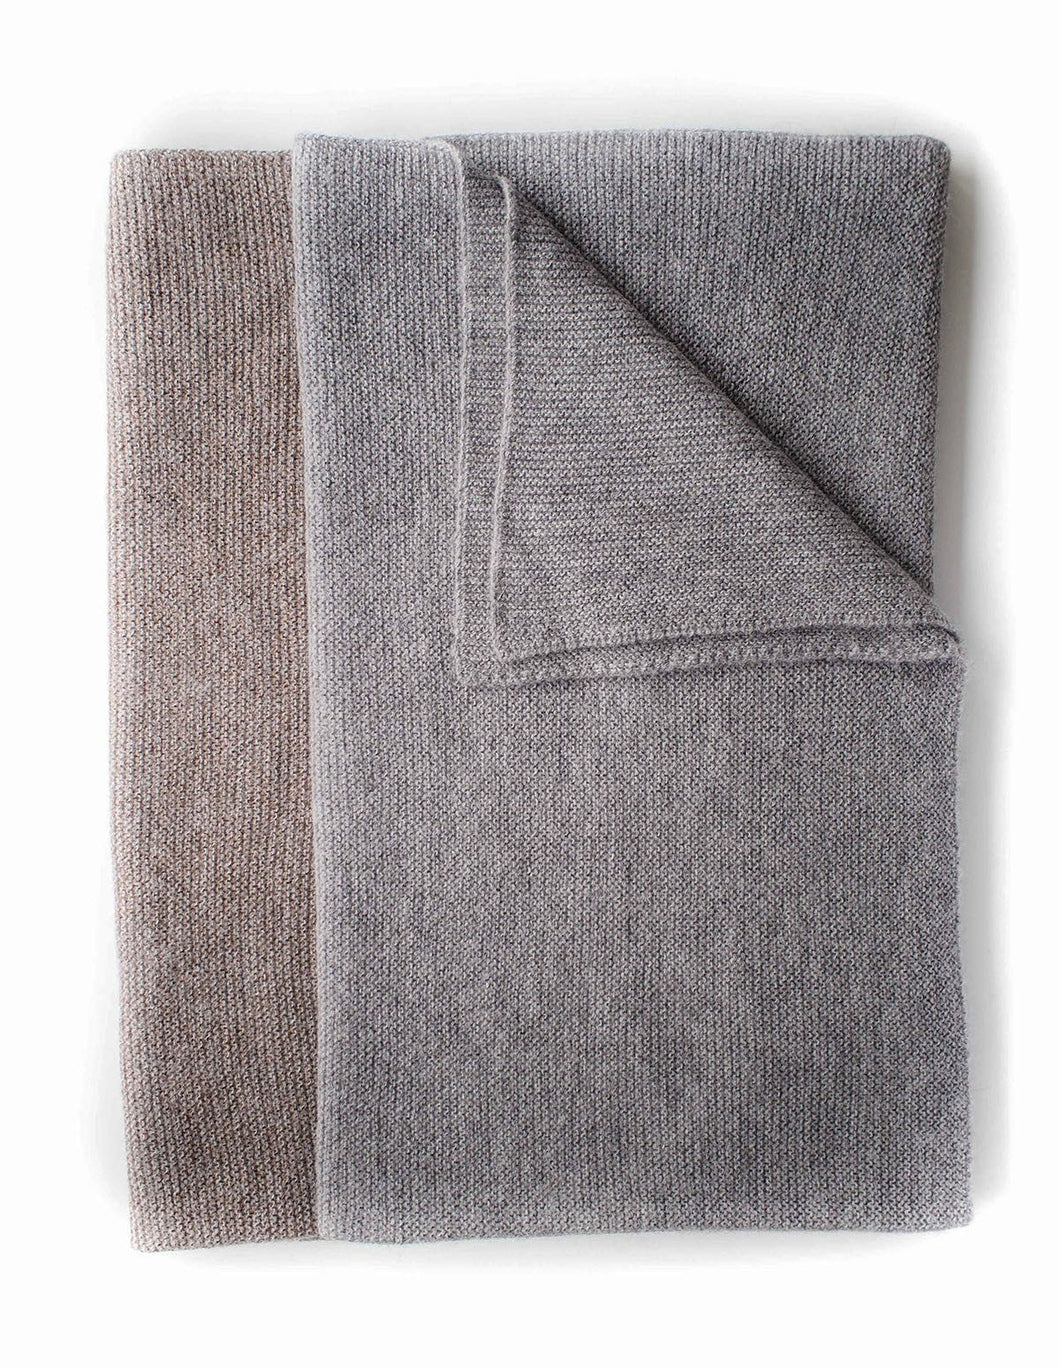 Pure alpaca knitted blanket in taupe & grey by Ally Bee